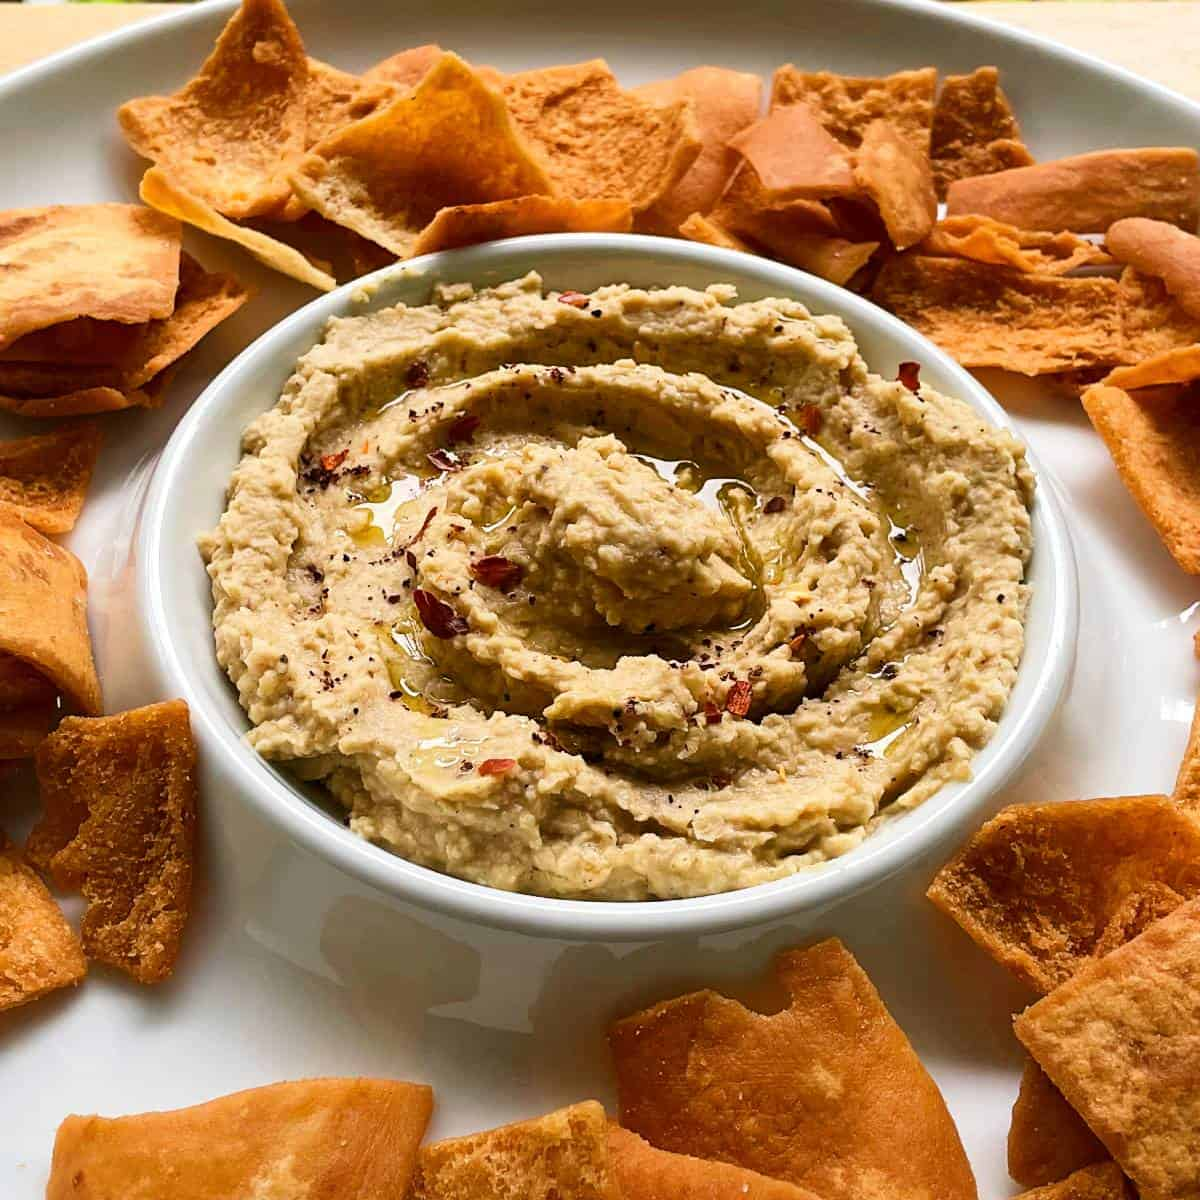 sesame free hummus in a white serving bowl with pita chips on the side.